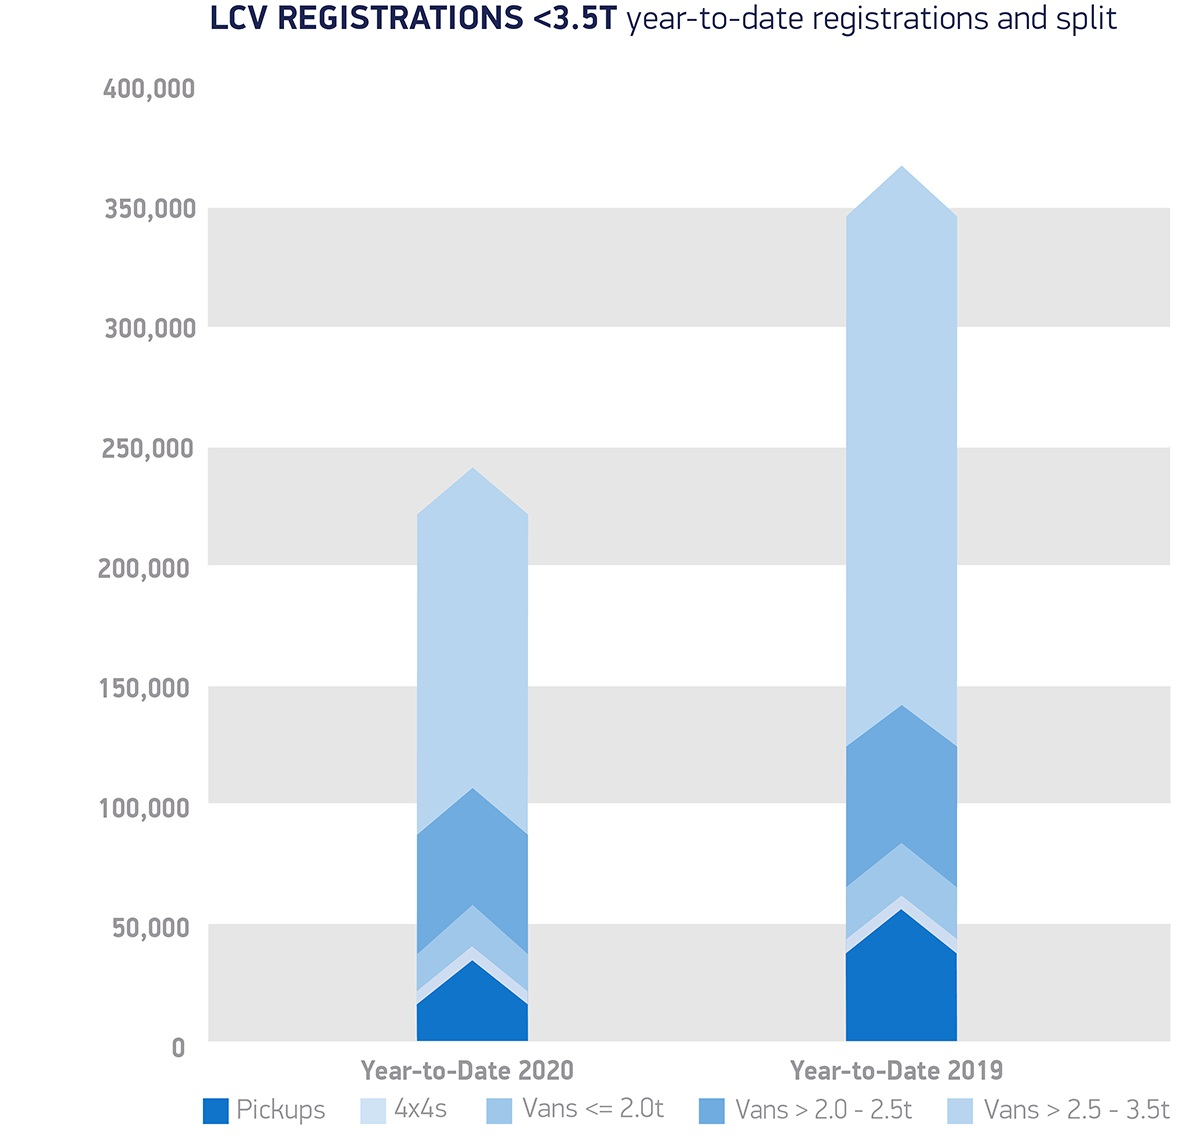 Van-registrations-3-5T-year-to-date-registrations-and-split-December-20